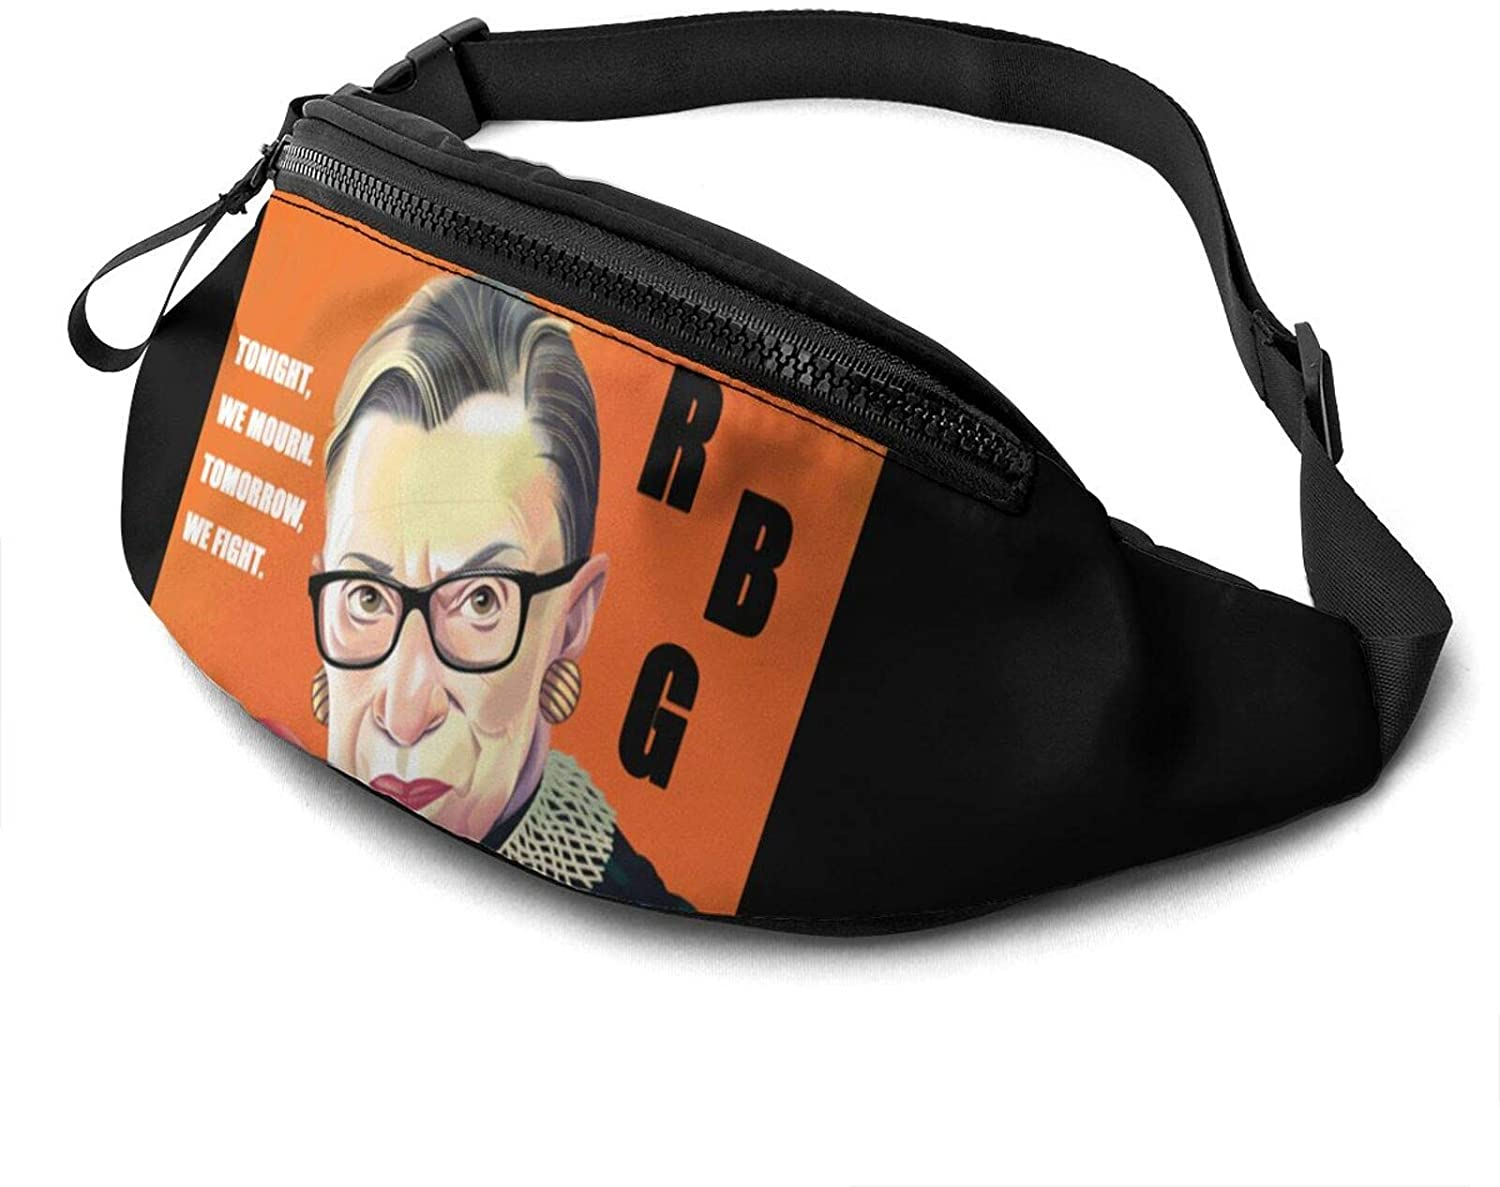 ATSH RBG Tonight, We Mourn. Tomorrow We Fight. Fanny Pack Running Waist Pack Bag Casual Super Lightweight Fanny Pack for Unisex